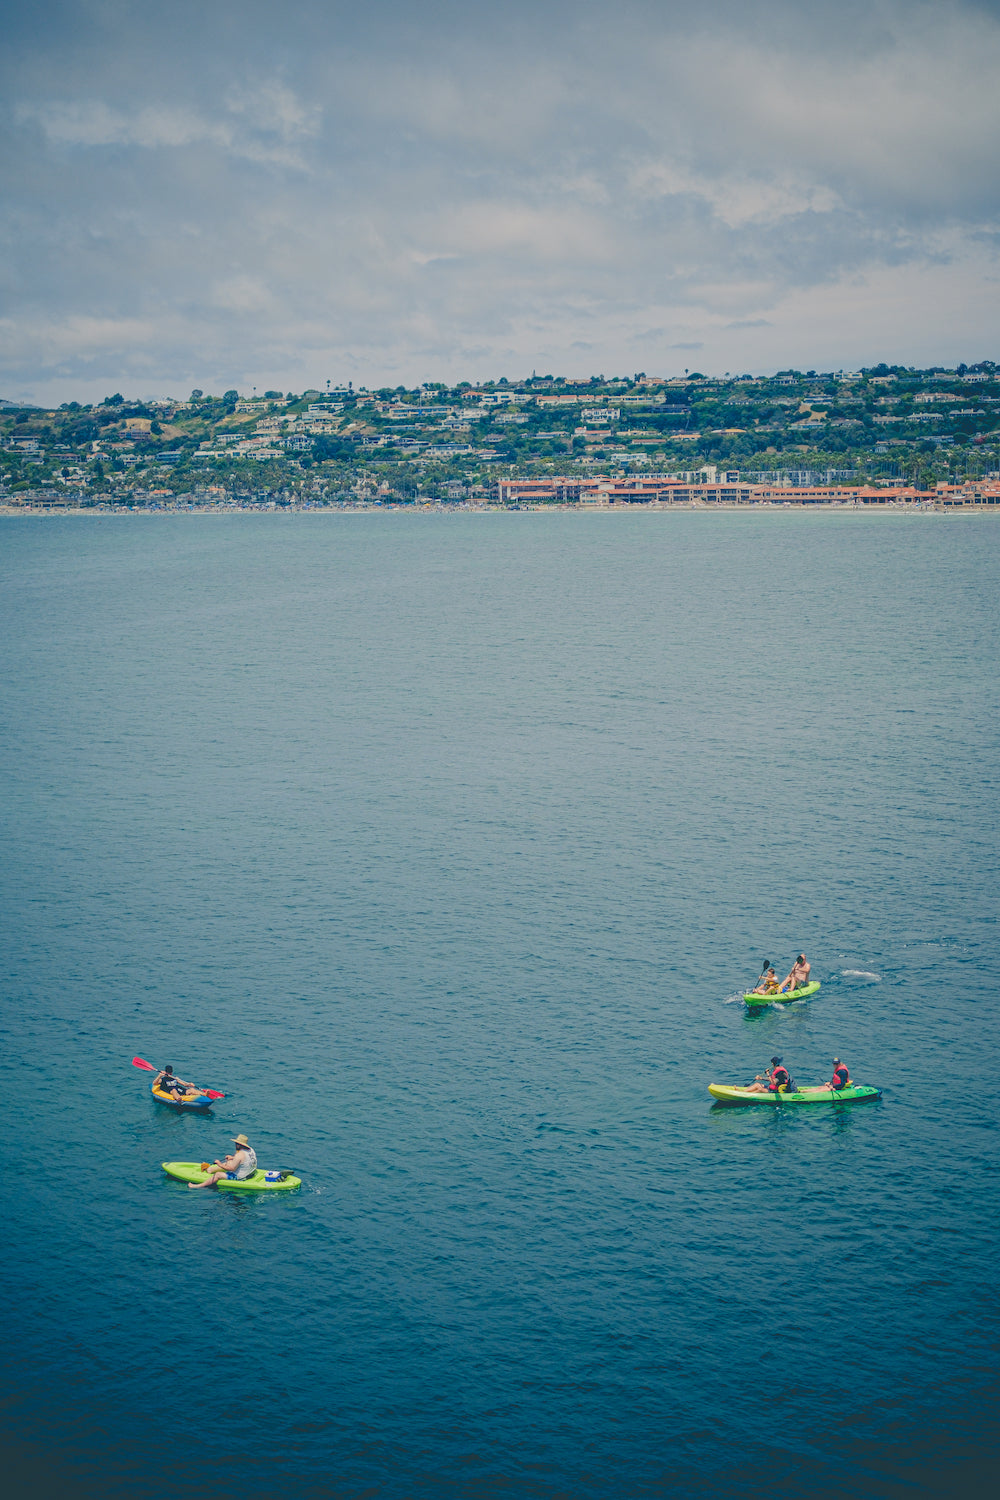 Paddle boarding in La Jolla with View of City